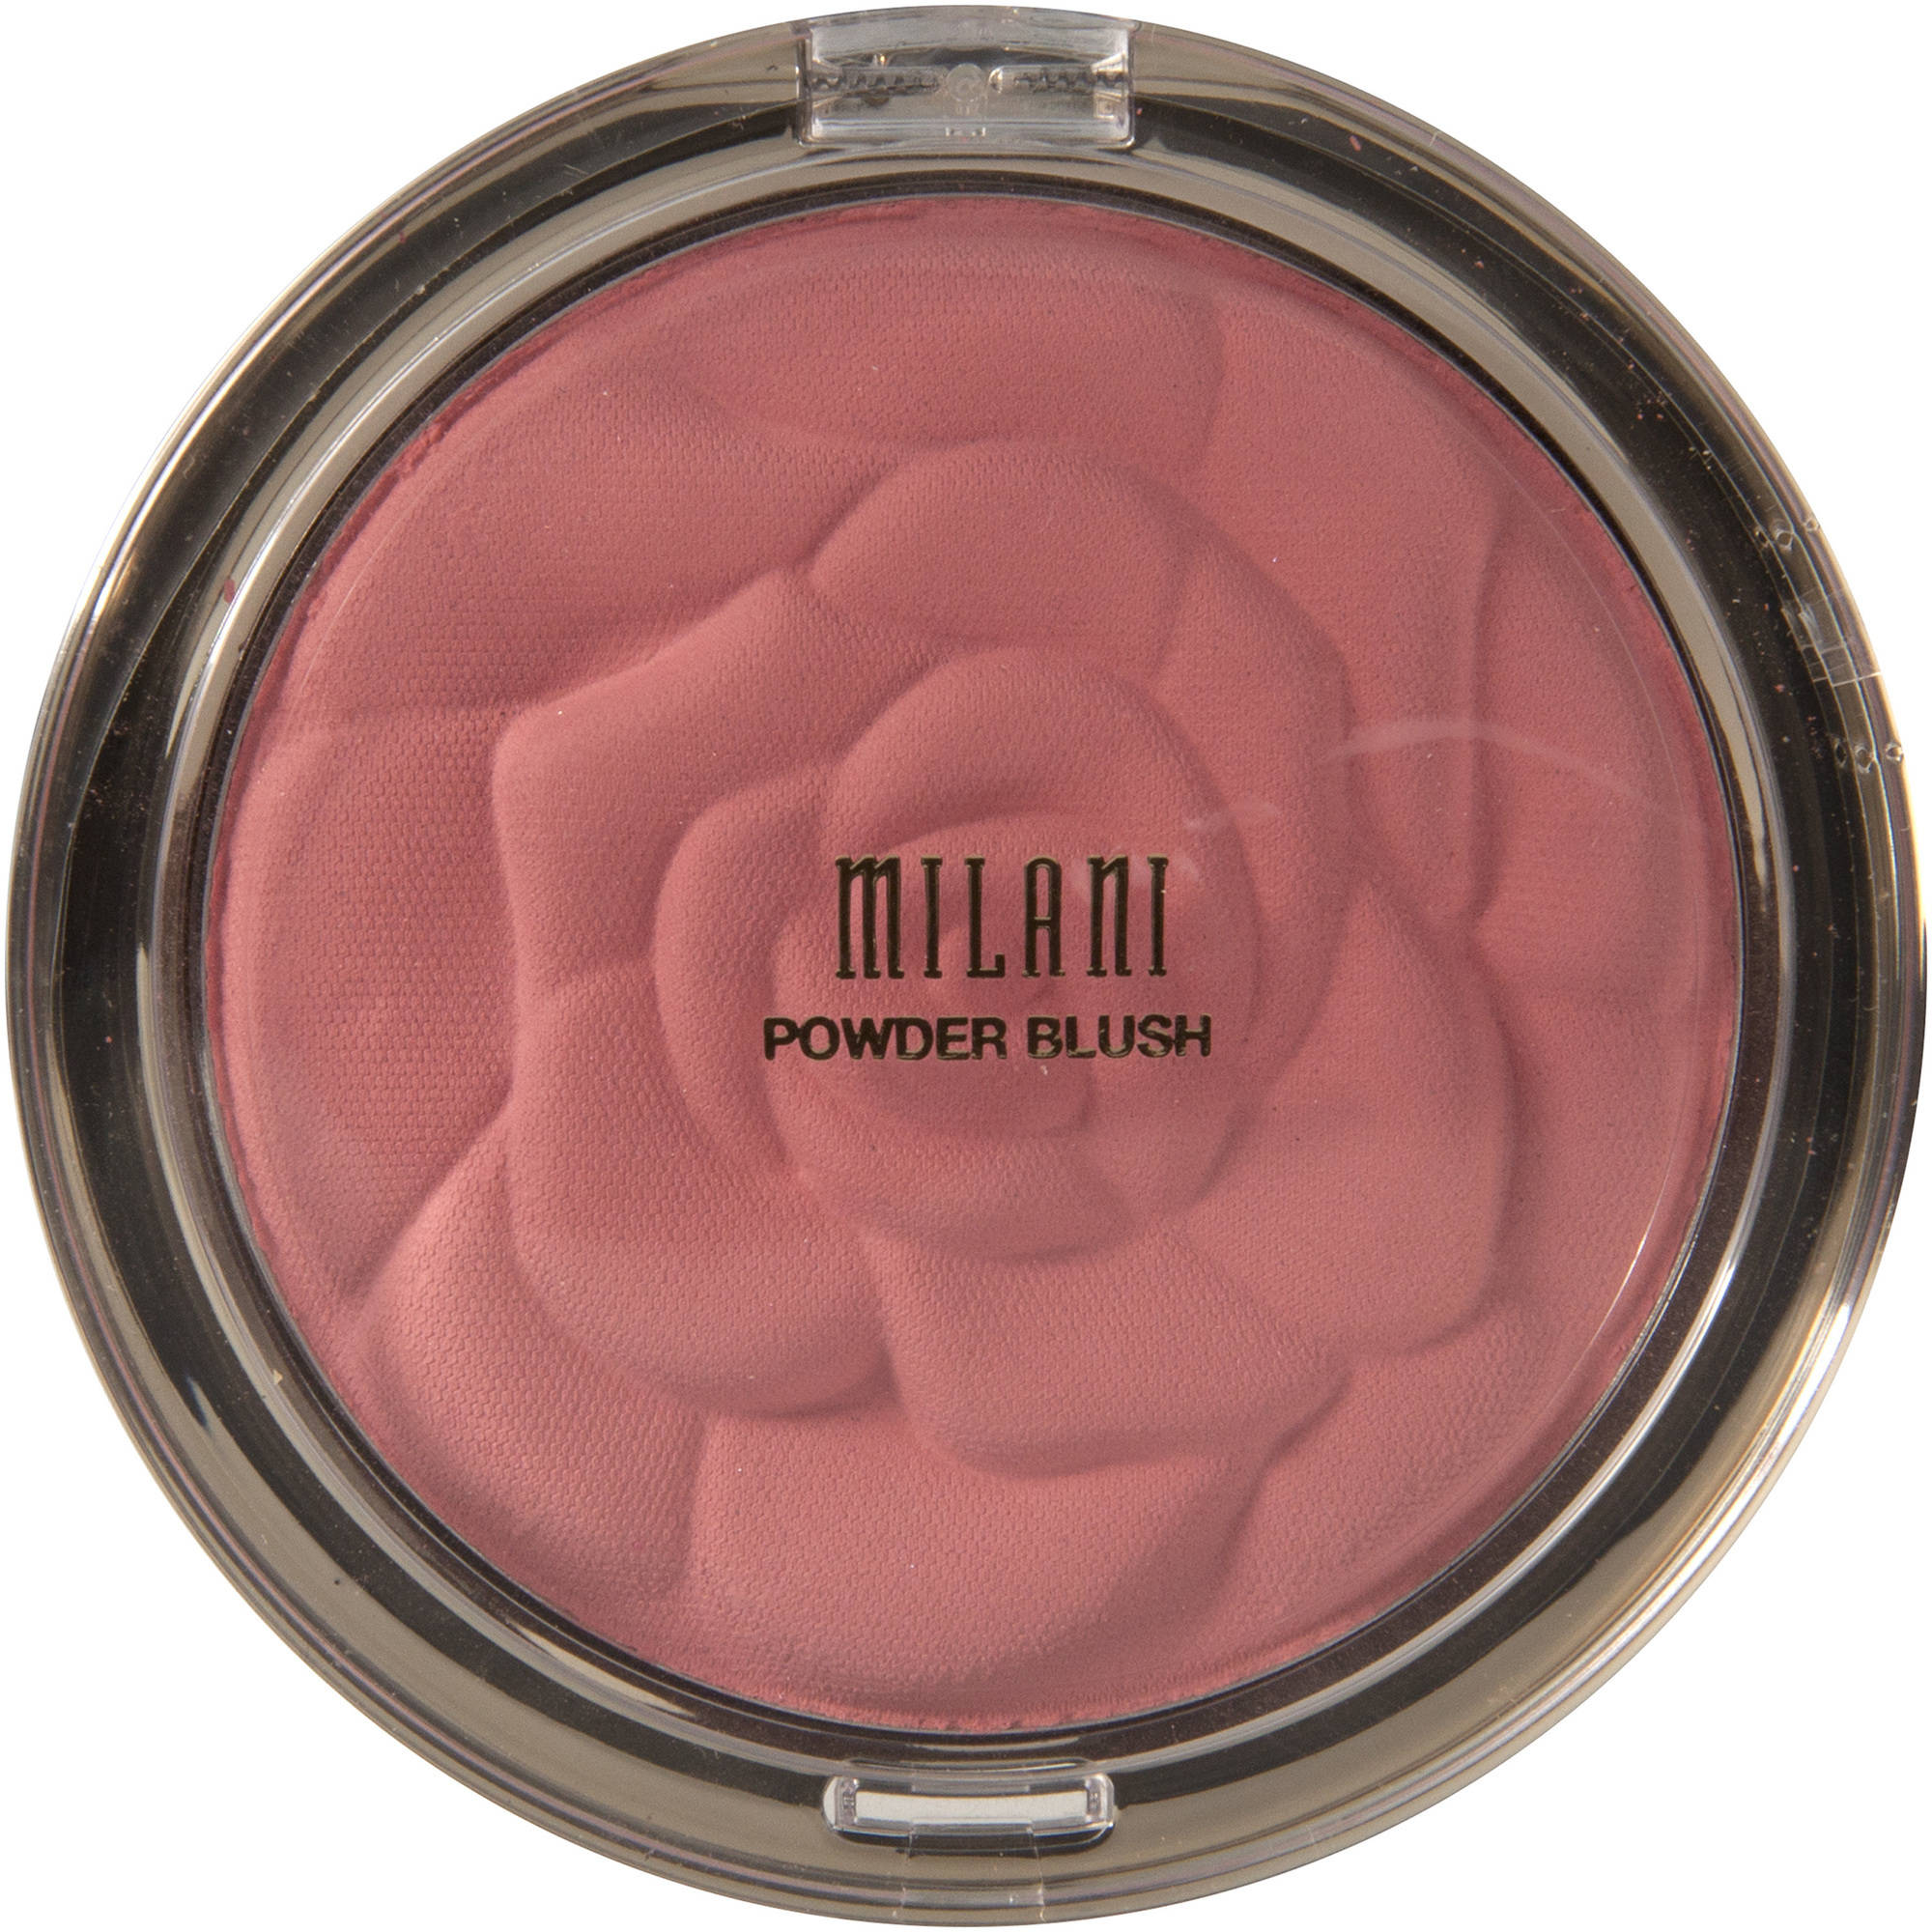 Milani Powder Blush, 01 Romantic Rose, .6 oz